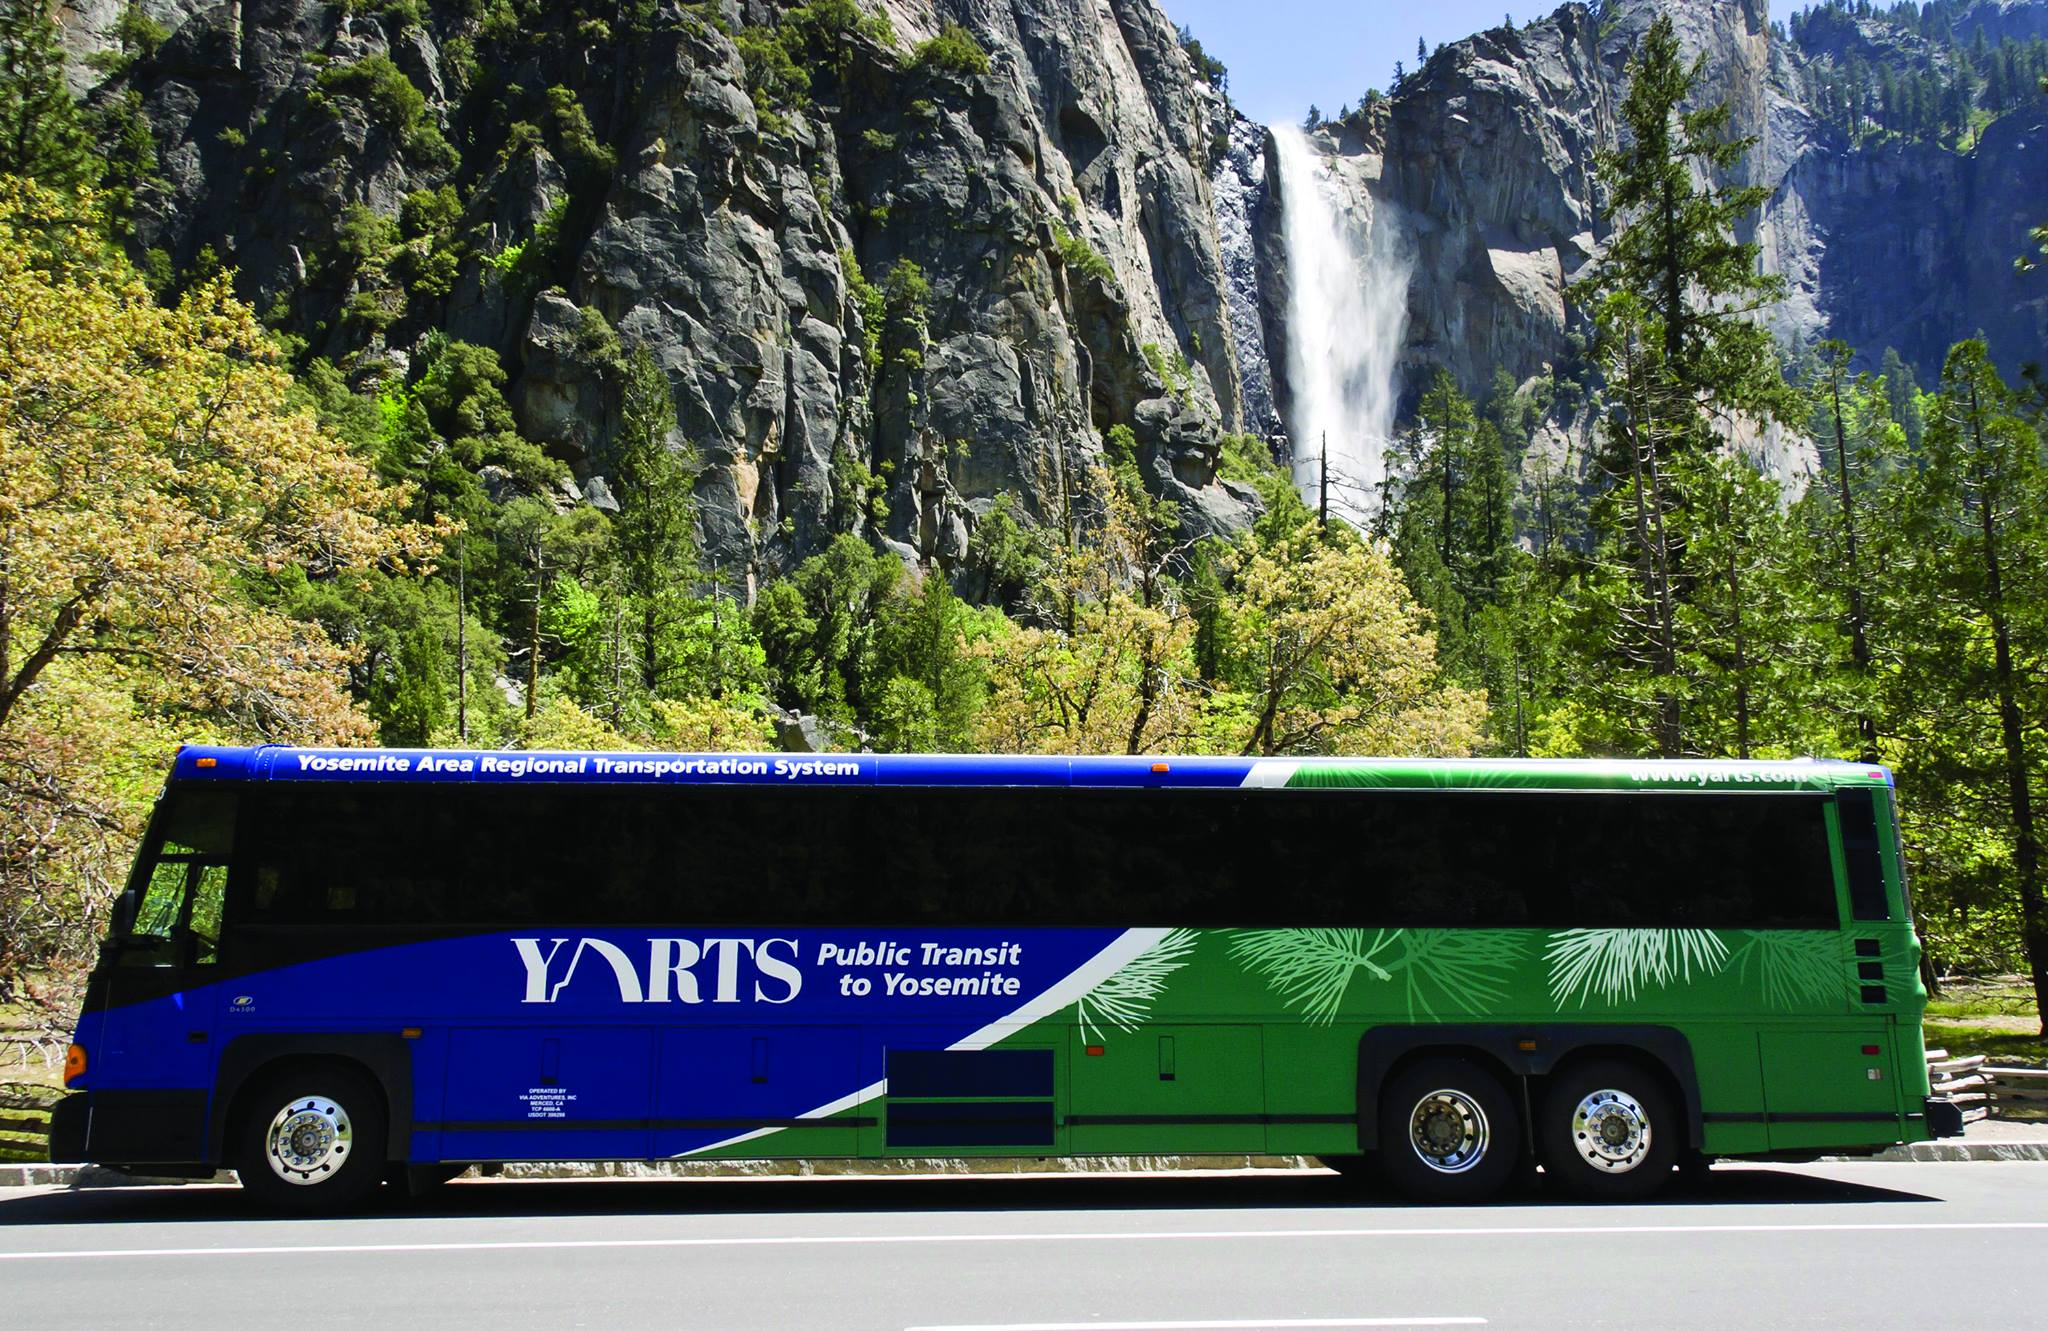 Yarts bus at Yosemite Falls.jpg